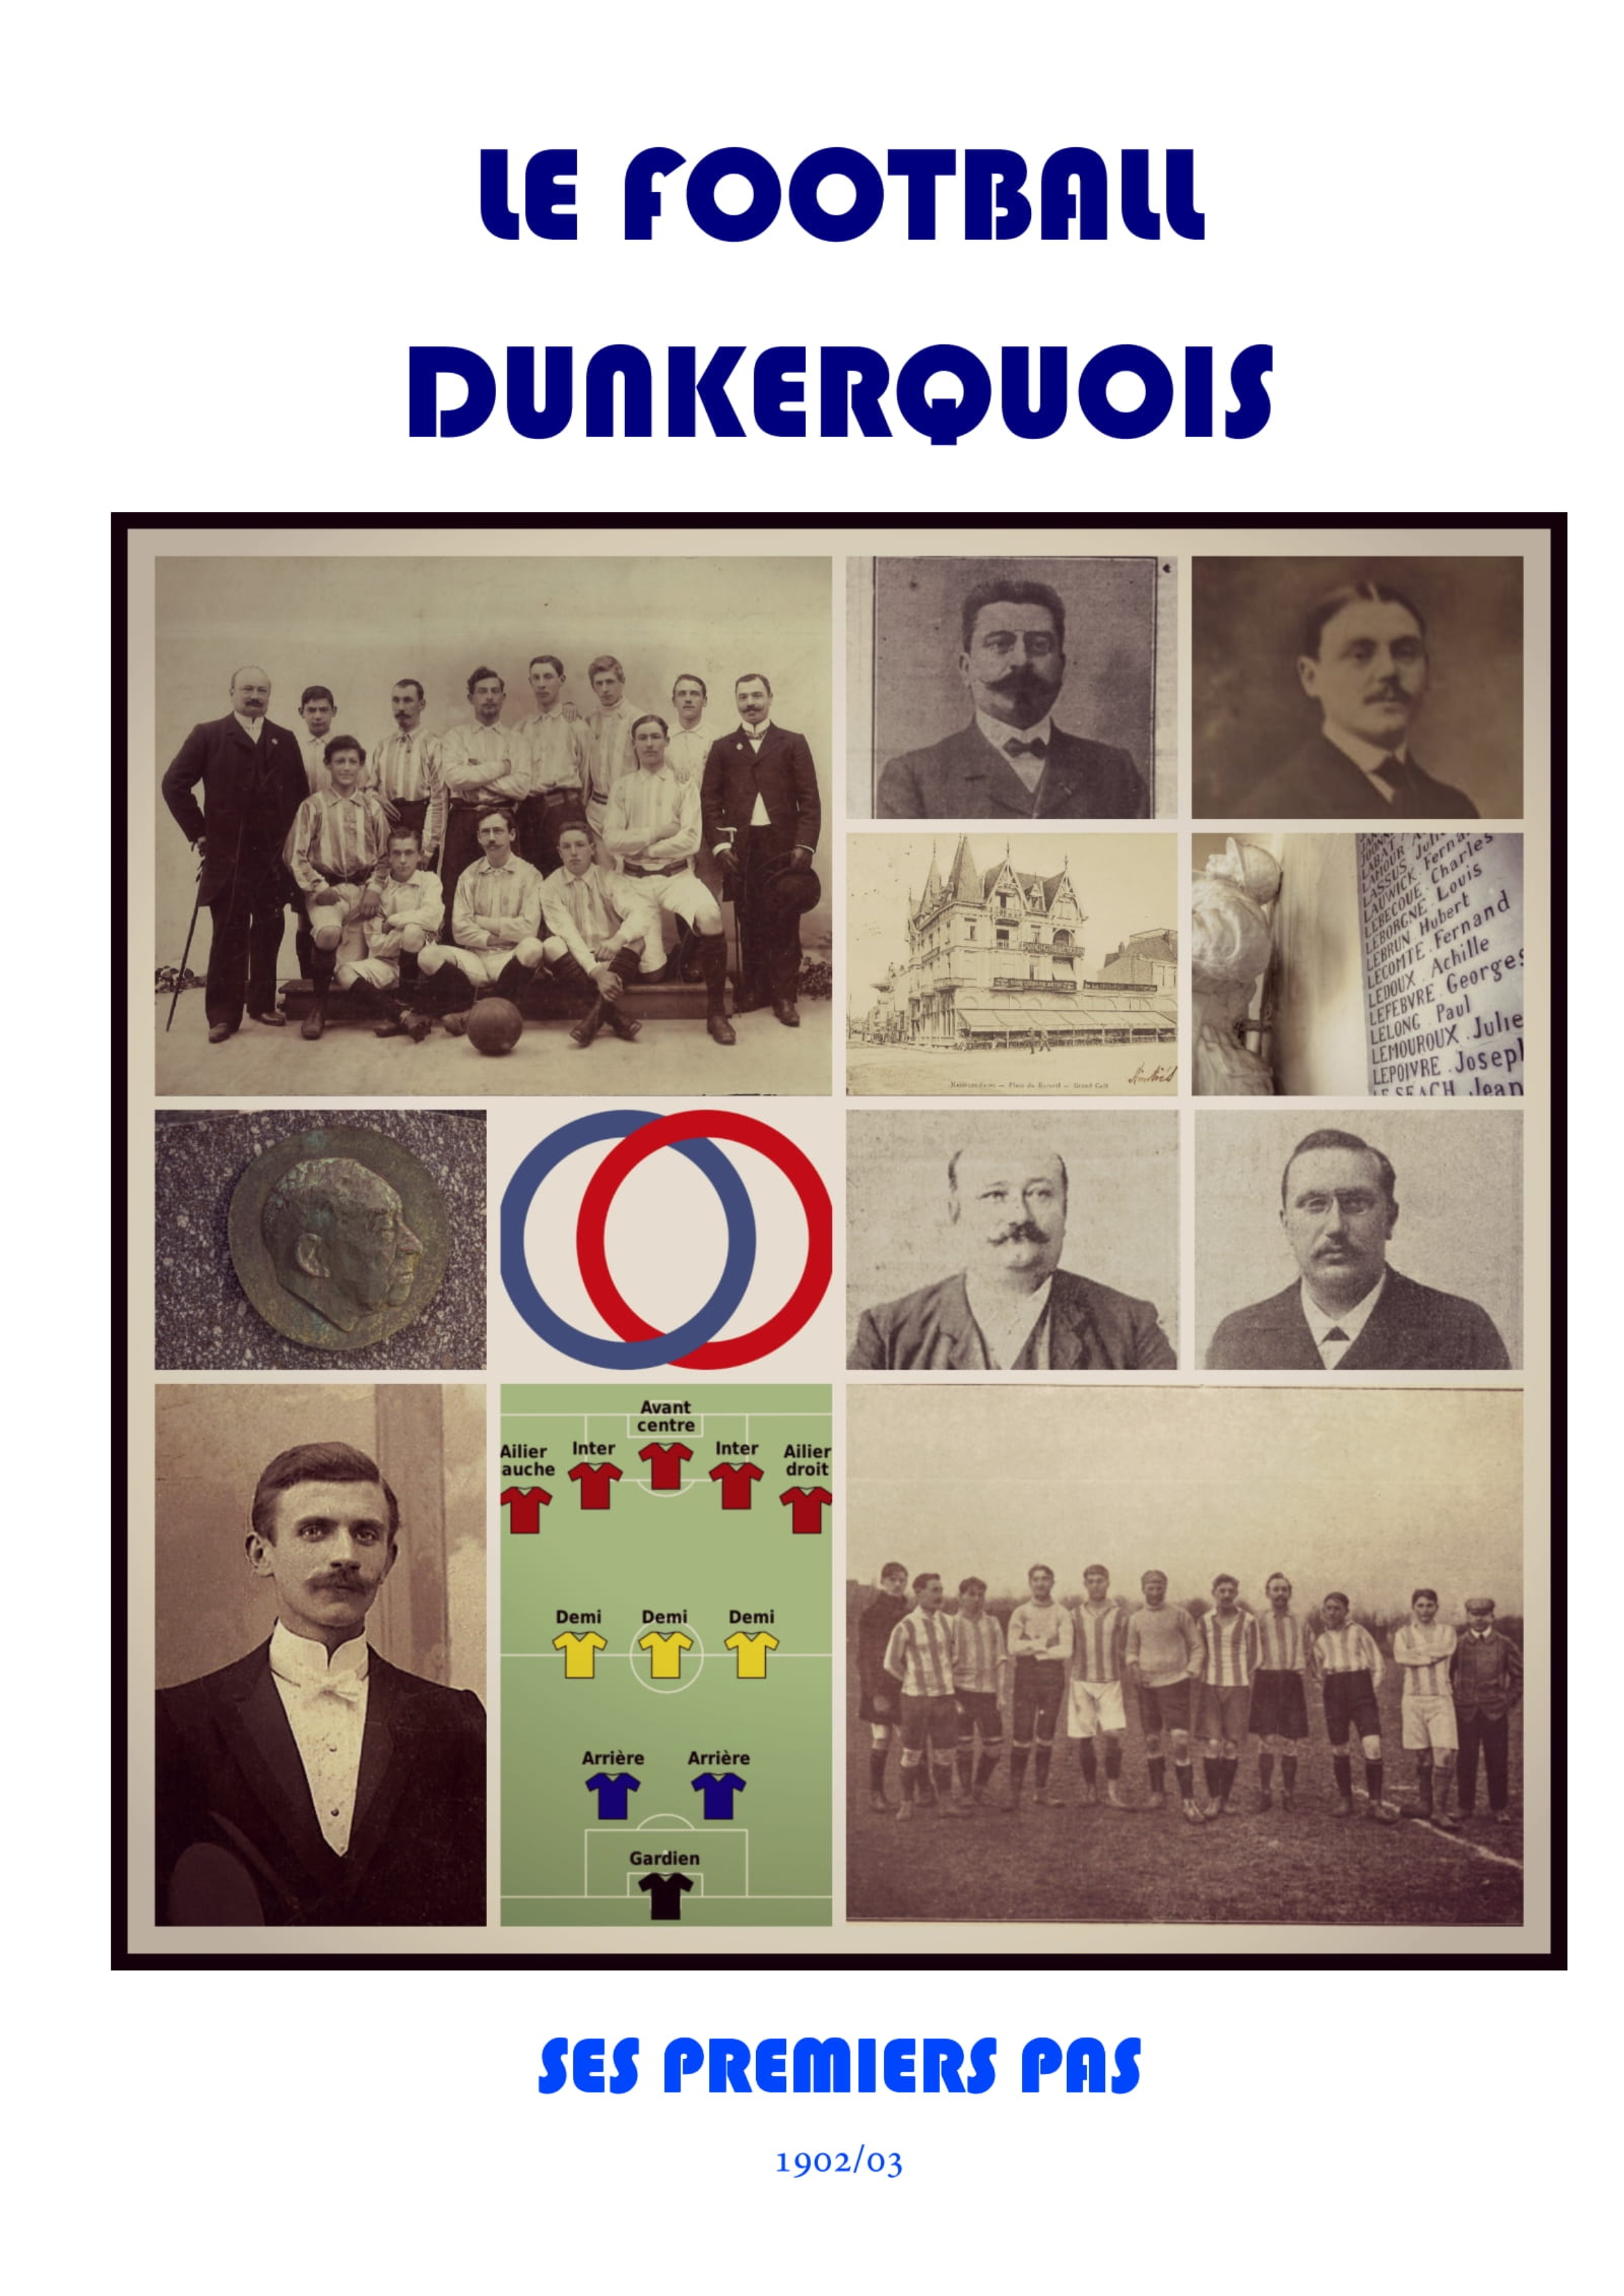 LE FOOTBALL DUNKERQUOIS (1902/03)